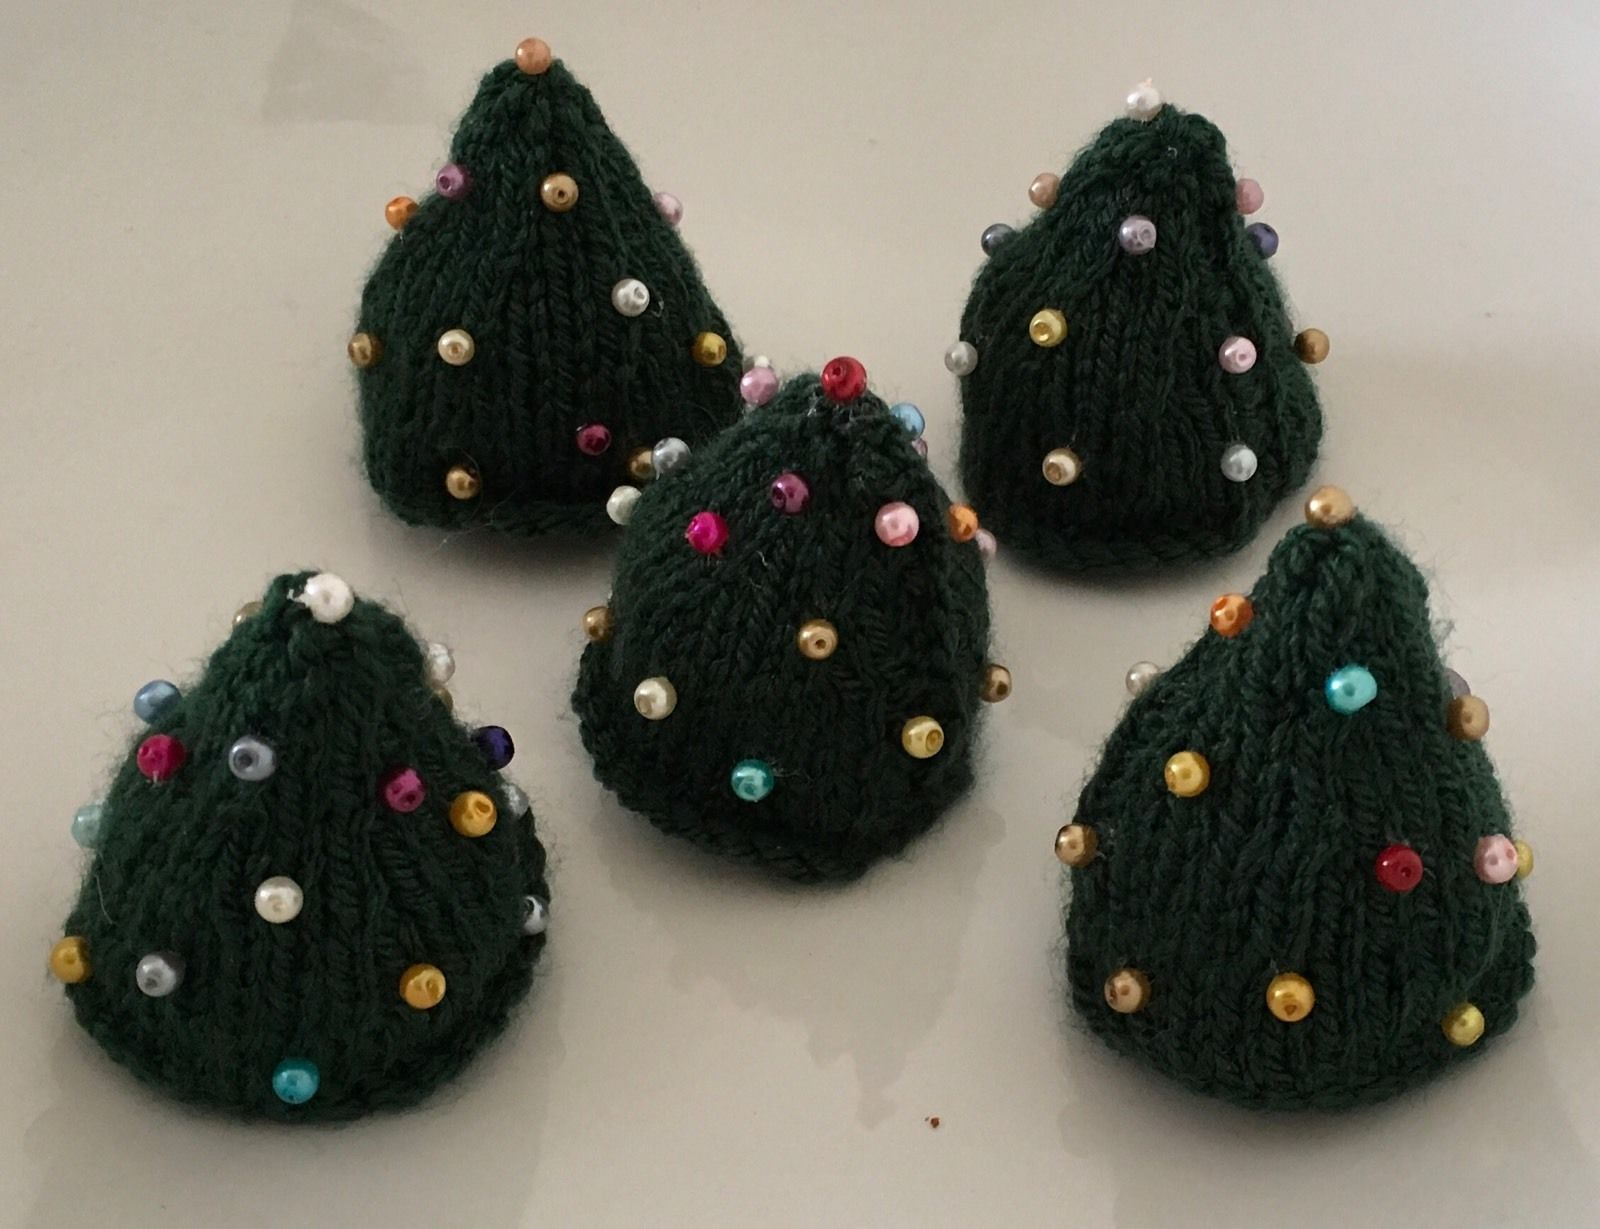 Pin by Jennifer Ungvarsky on Christmas Crafts | Pinterest | Knitted ...